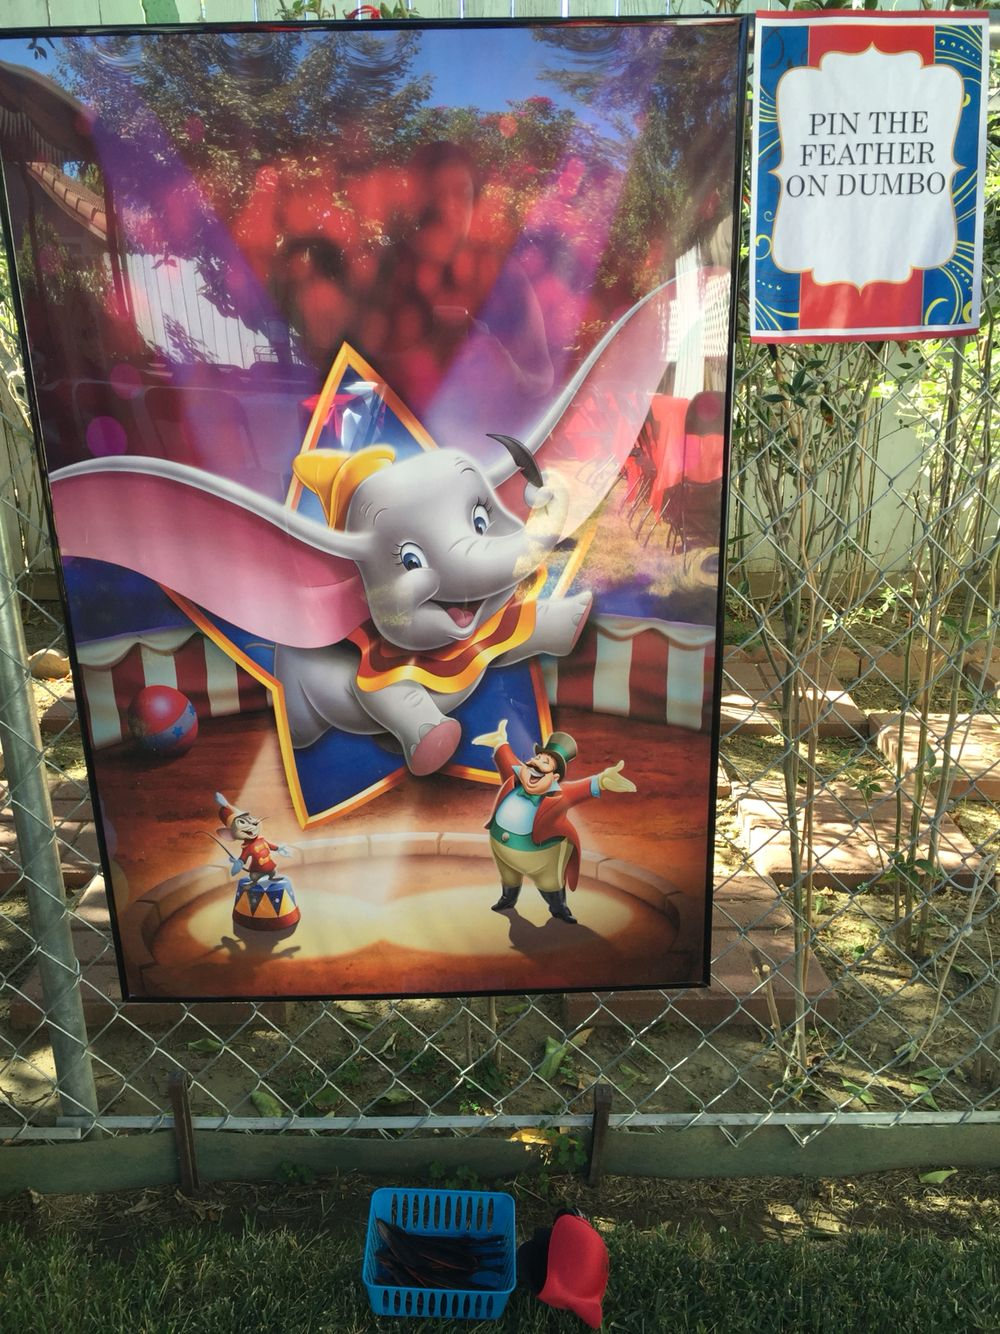 Carnival games. Pin the feather on Dumbo. Dumbo themed carnival birthday party